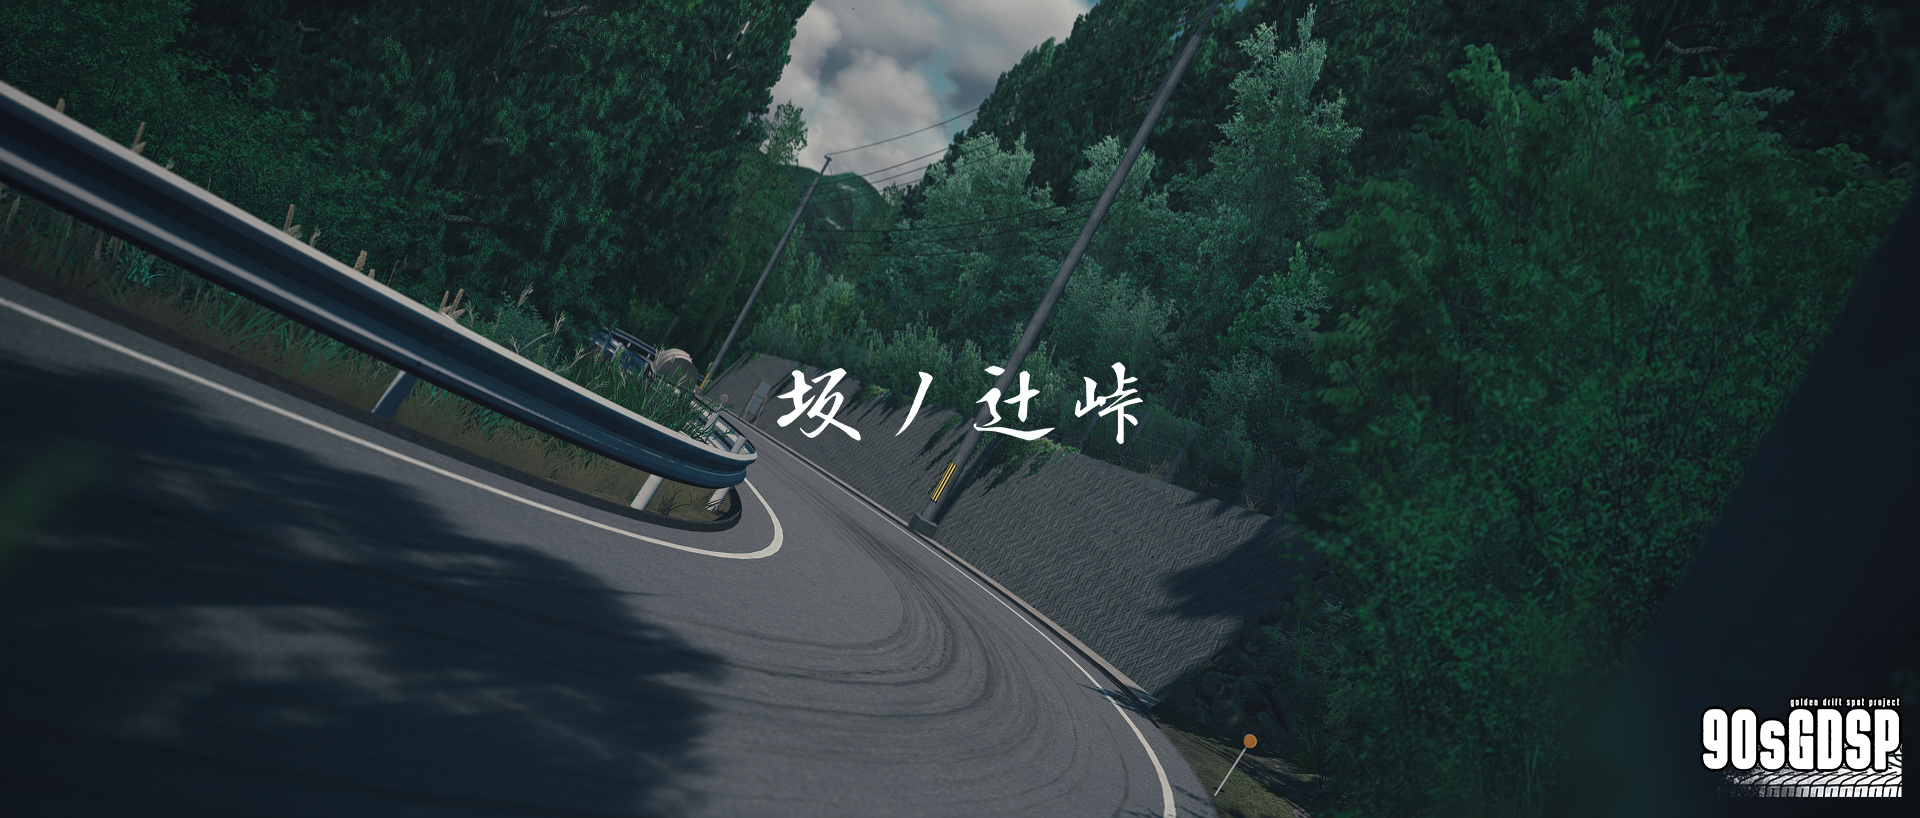 screenshot_msk_s13_works9_sakanotsuji_20